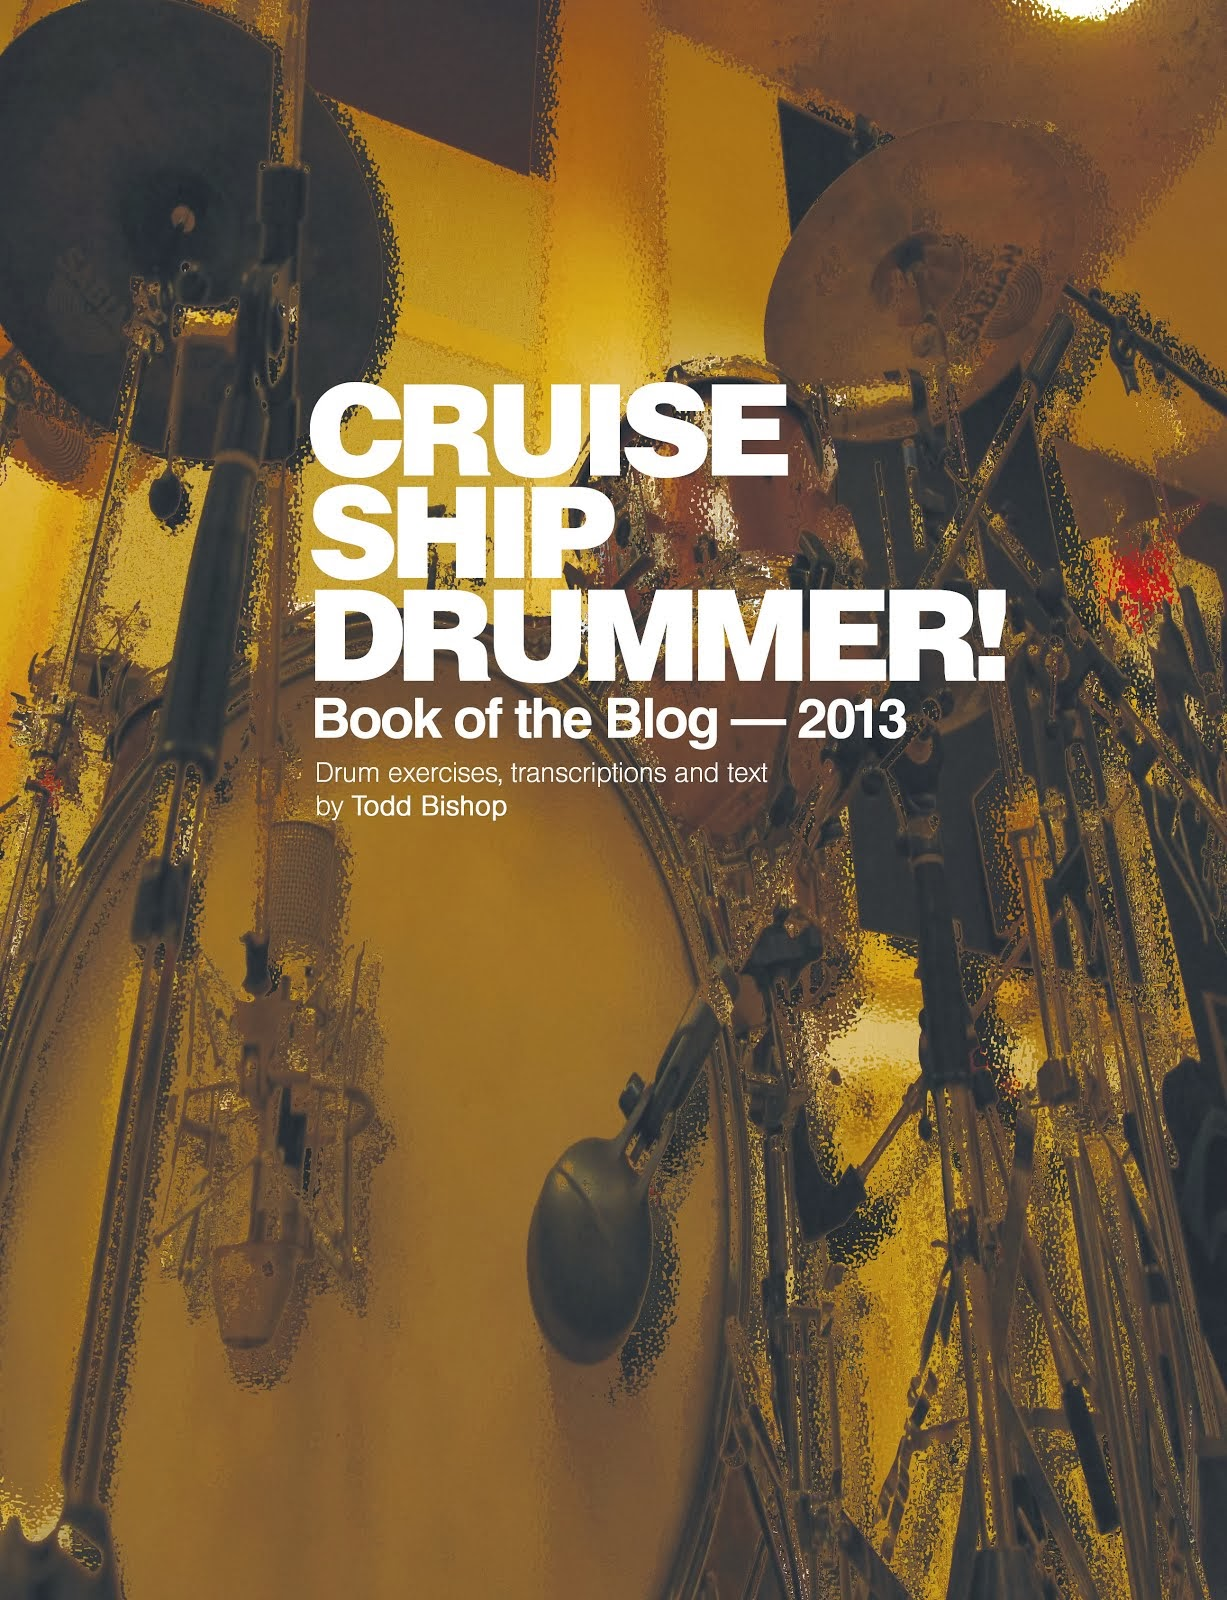 New CSD! book: Book of the Blog — 2013